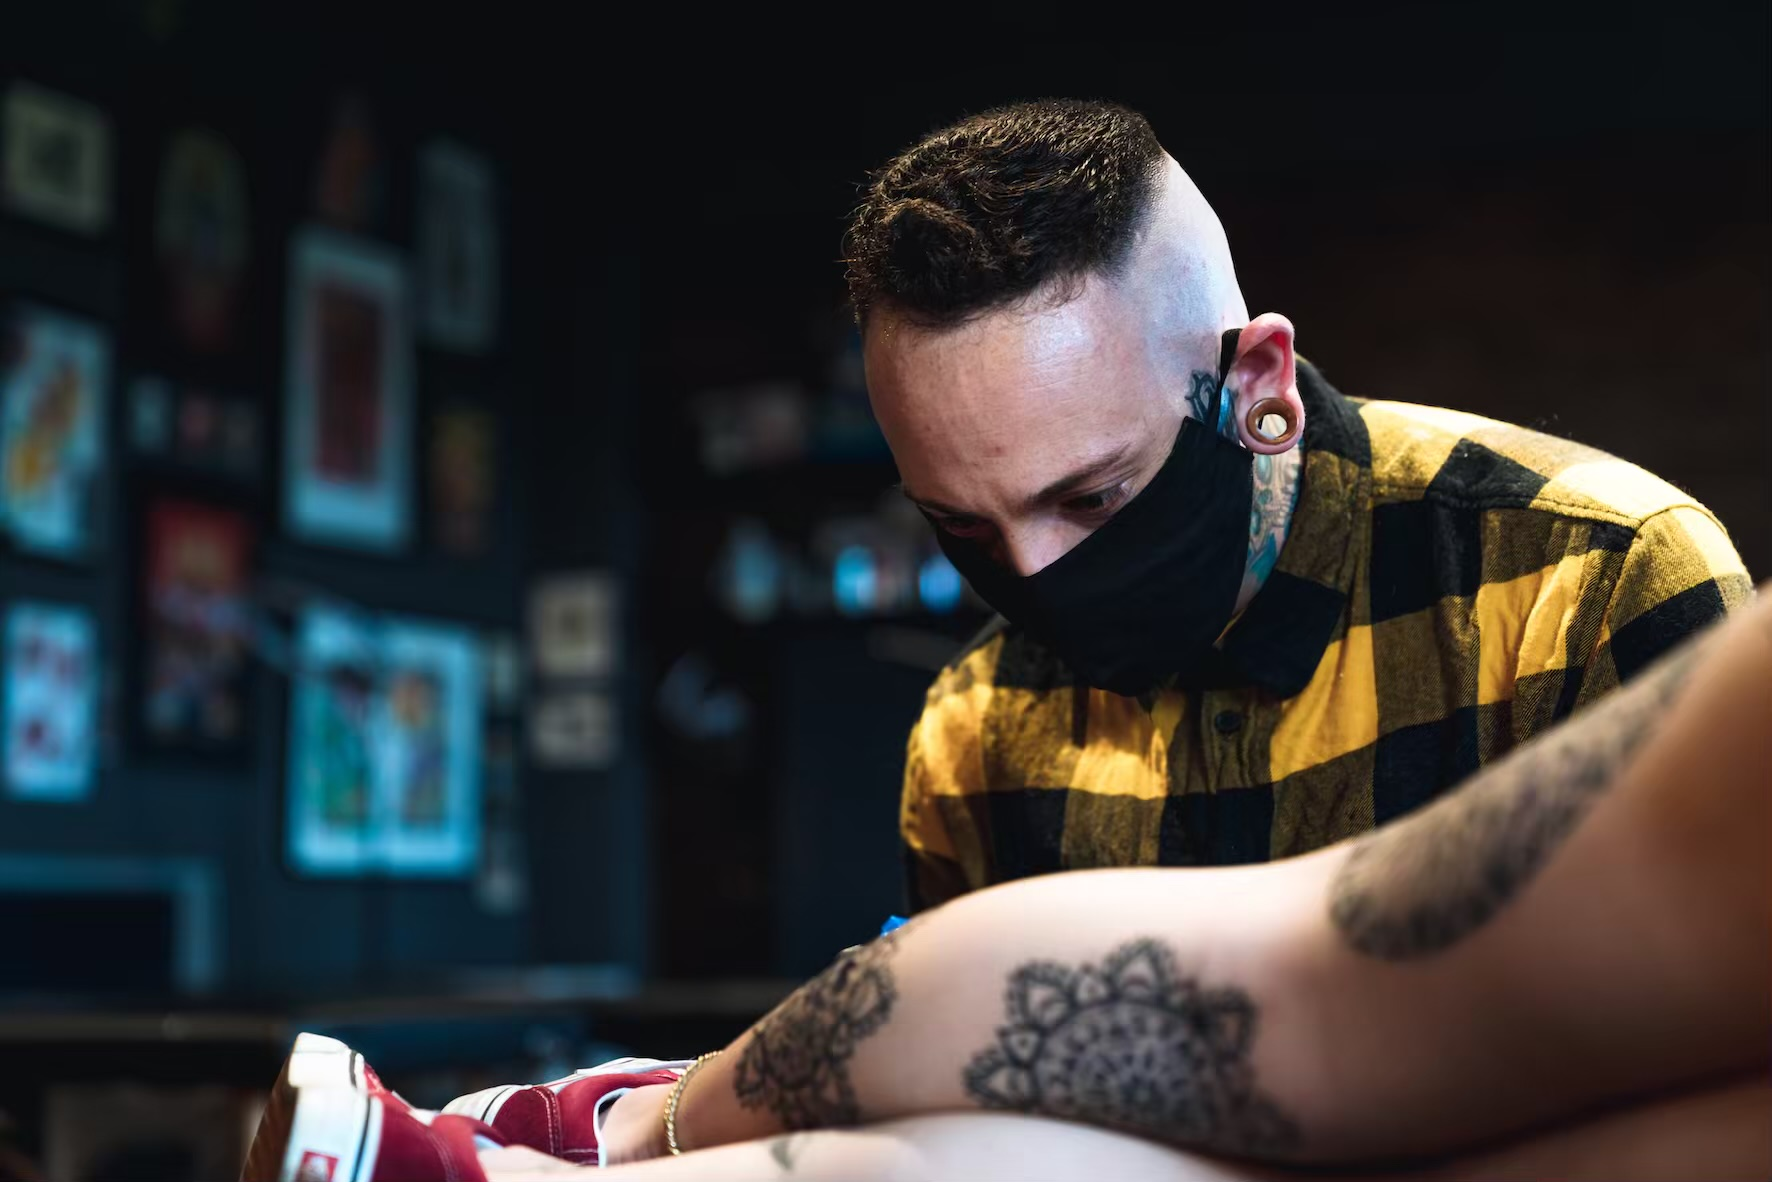 Interview with tattoo artist Peter Savage